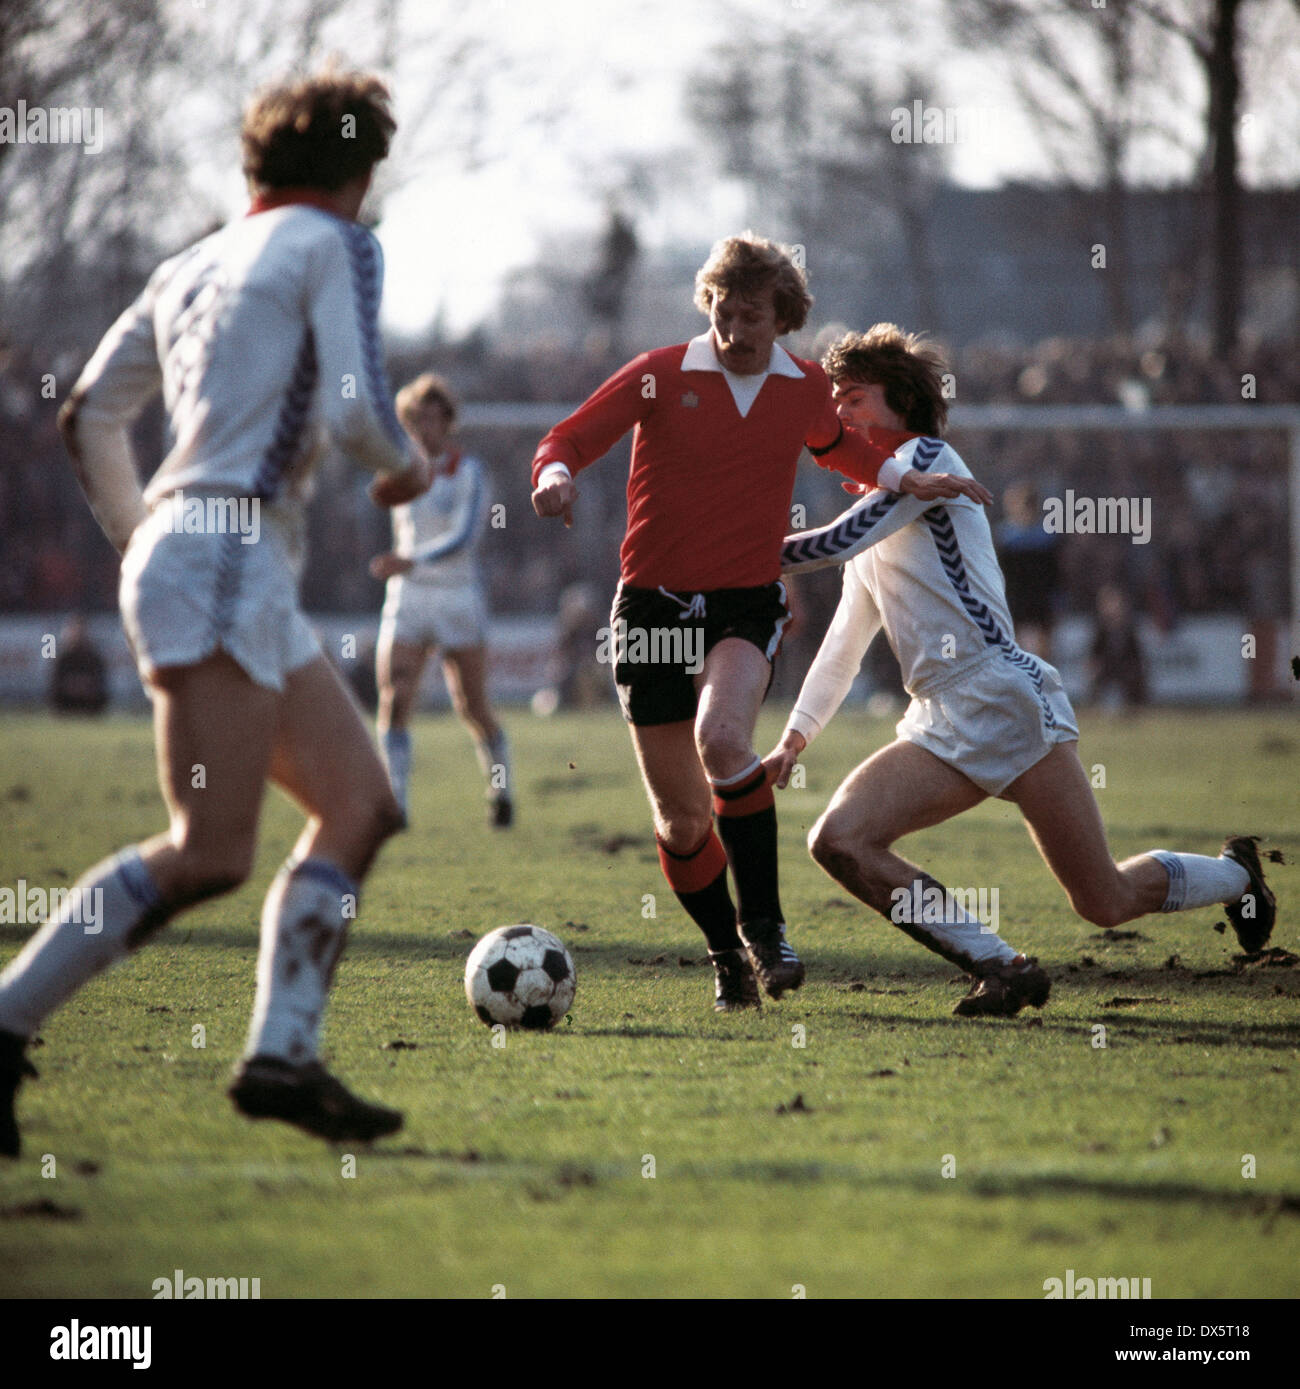 football, DFB Cup, 1976/1977, quarterfinal, Grotenburg Stadium, FC Bayer 05 Uerdingen versus Eintracht Frankfurt 6:3 AET, scene of the match, team leader Juergen Grabowski (Eintracht) in ball possession - Stock Image